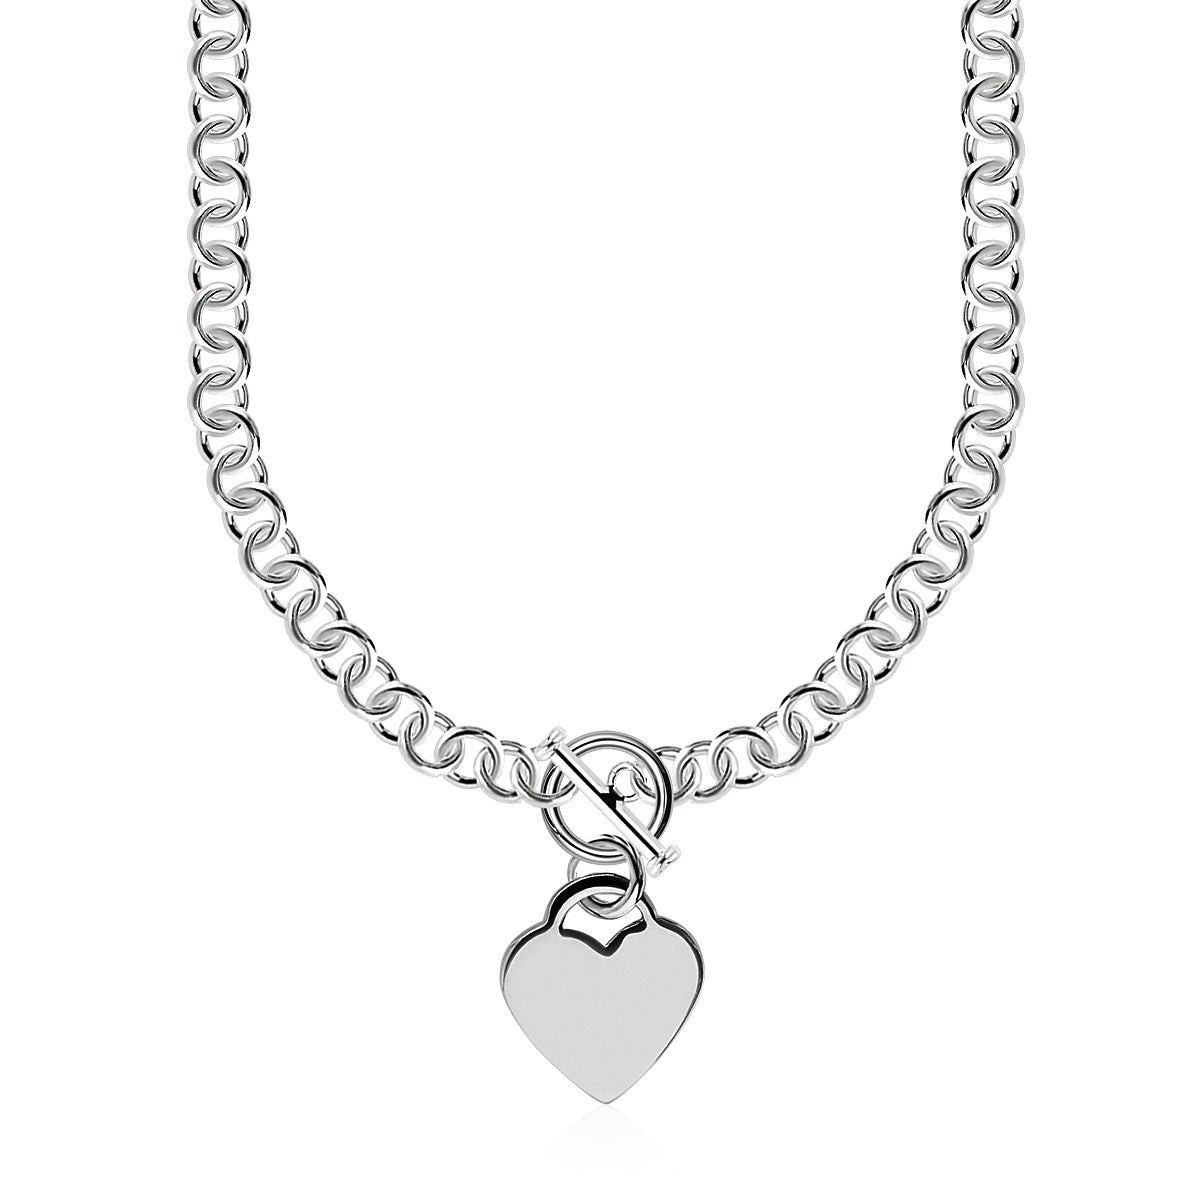 Sterling Silver Rolo Chain  with a Heart Toggle Charm and Rhodium Plating